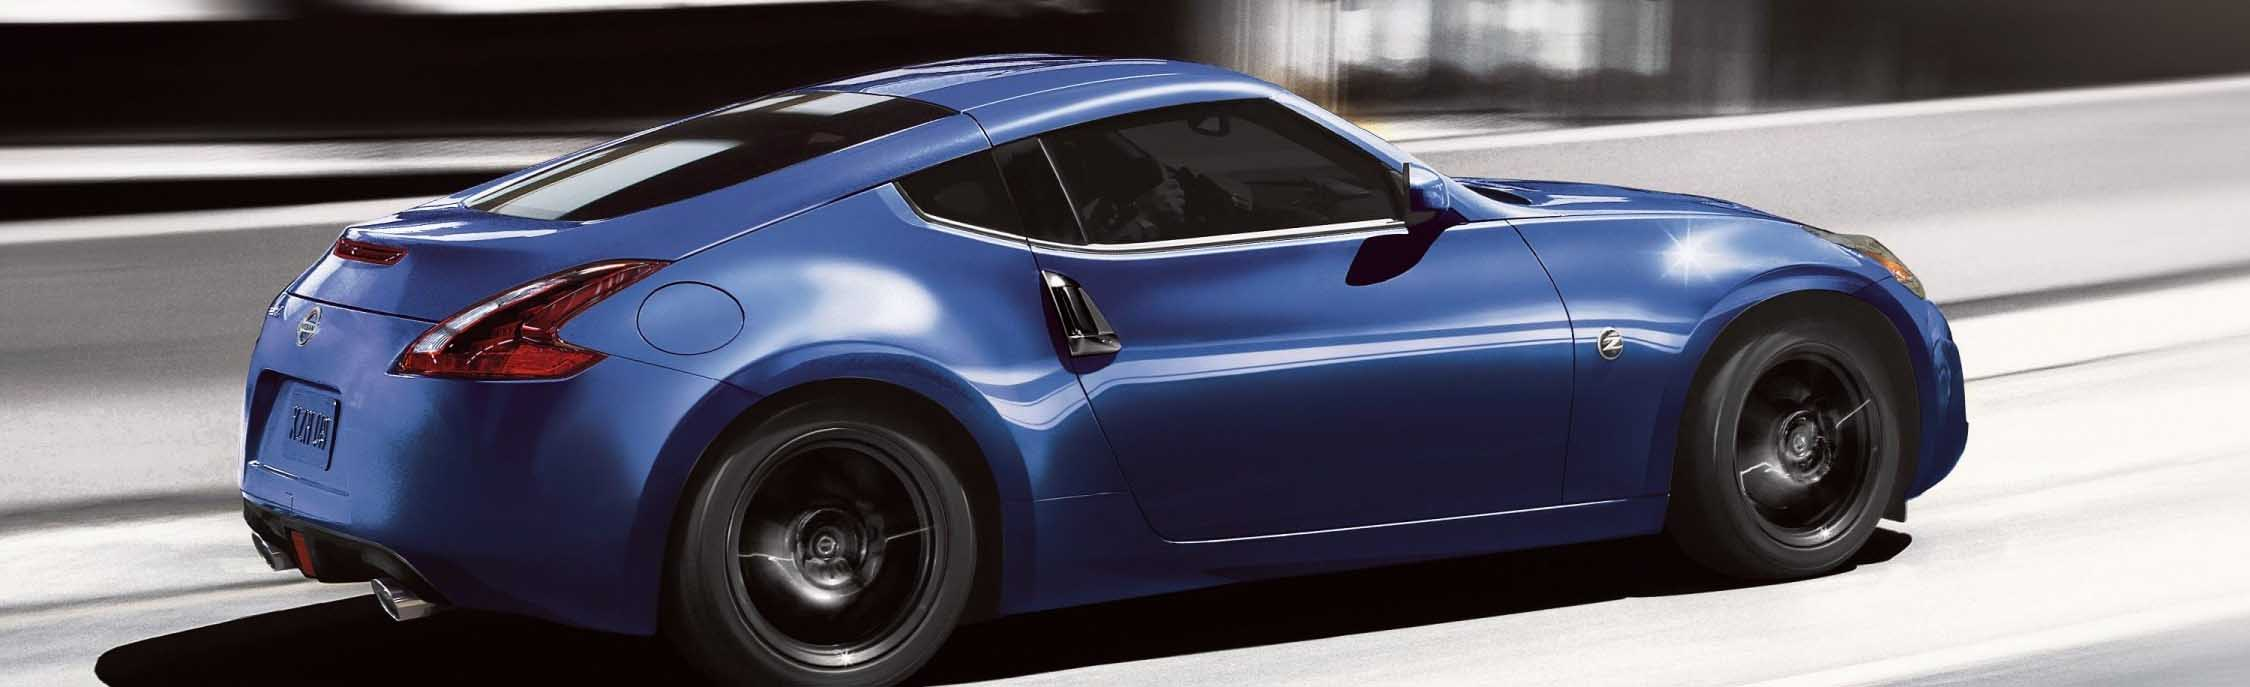 2020 Nissan 370Z Near Me Tomball TX